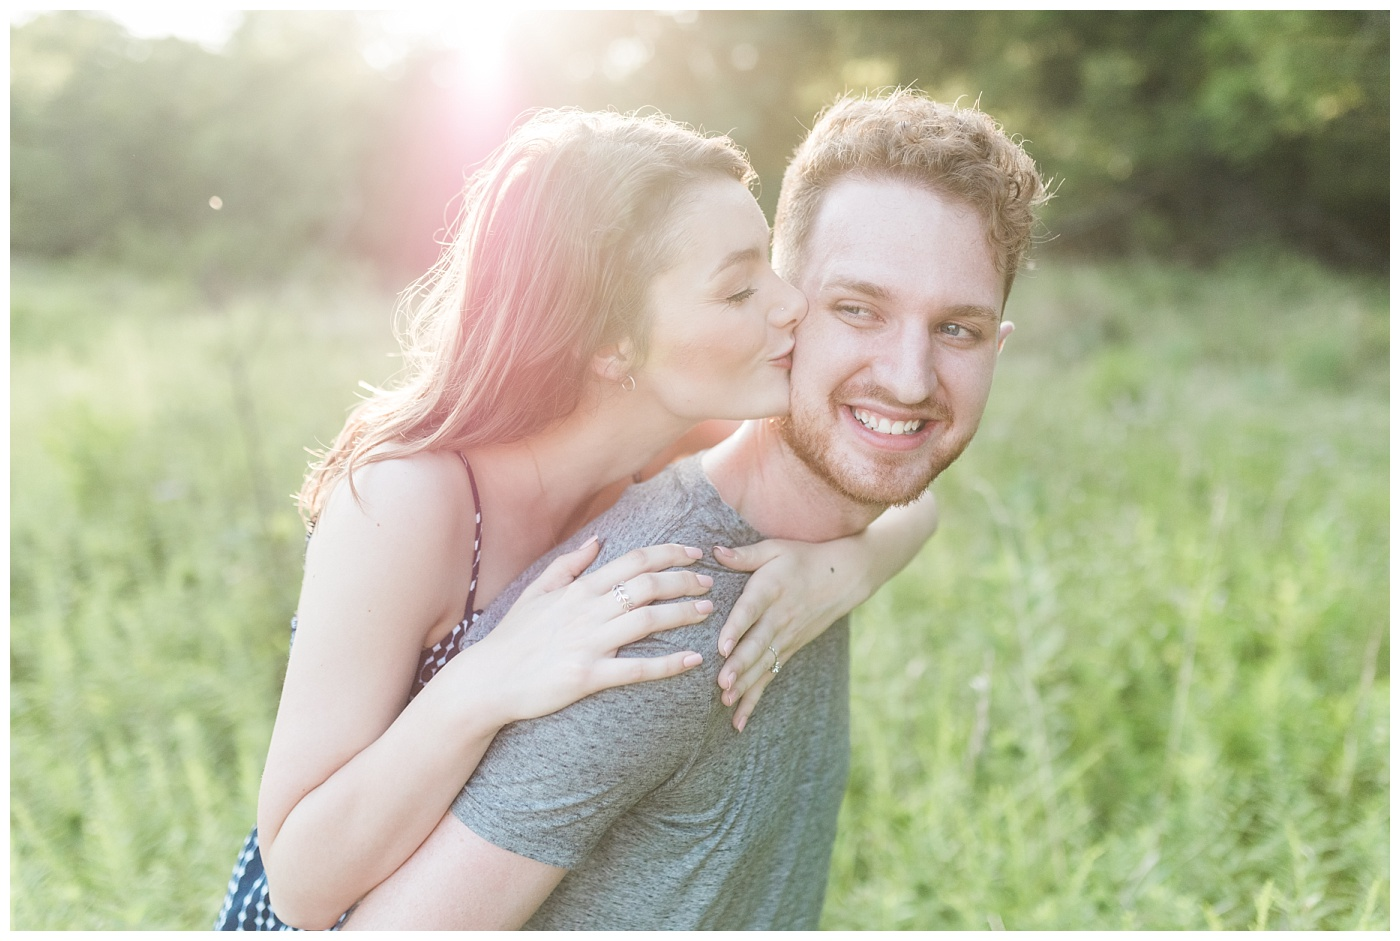 Stephanie Marie Photography Labor for Love Downtown North Liberty Engagement Session Iowa City Wedding Photographer Devin Cody_0016.jpg